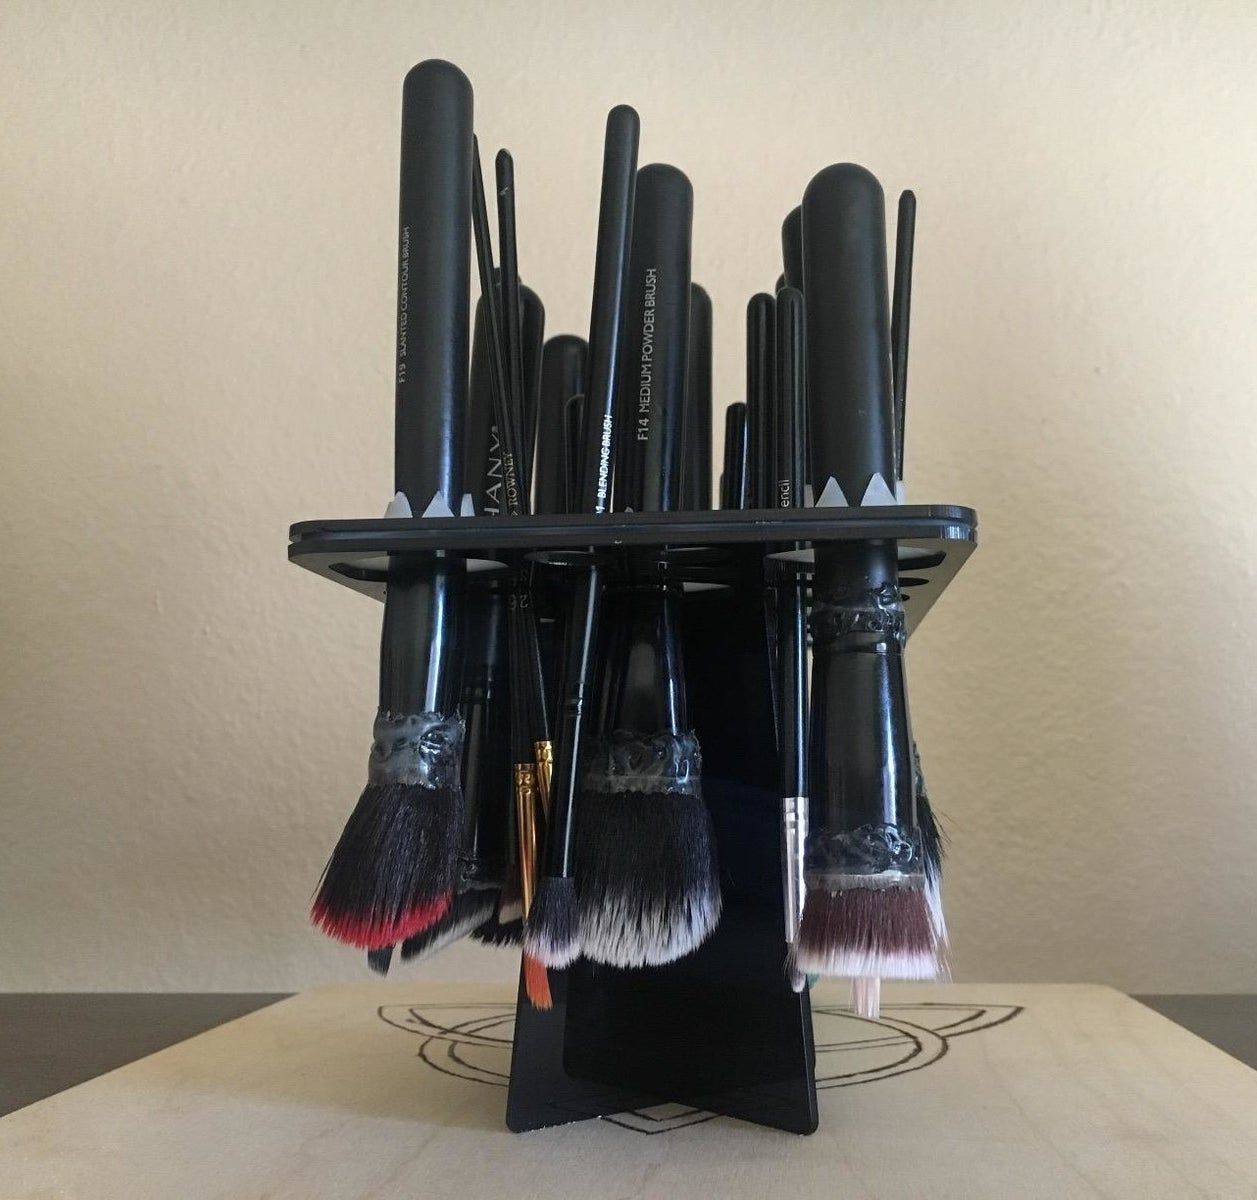 Reviewer image of makeup brushes drying upside down on the tree